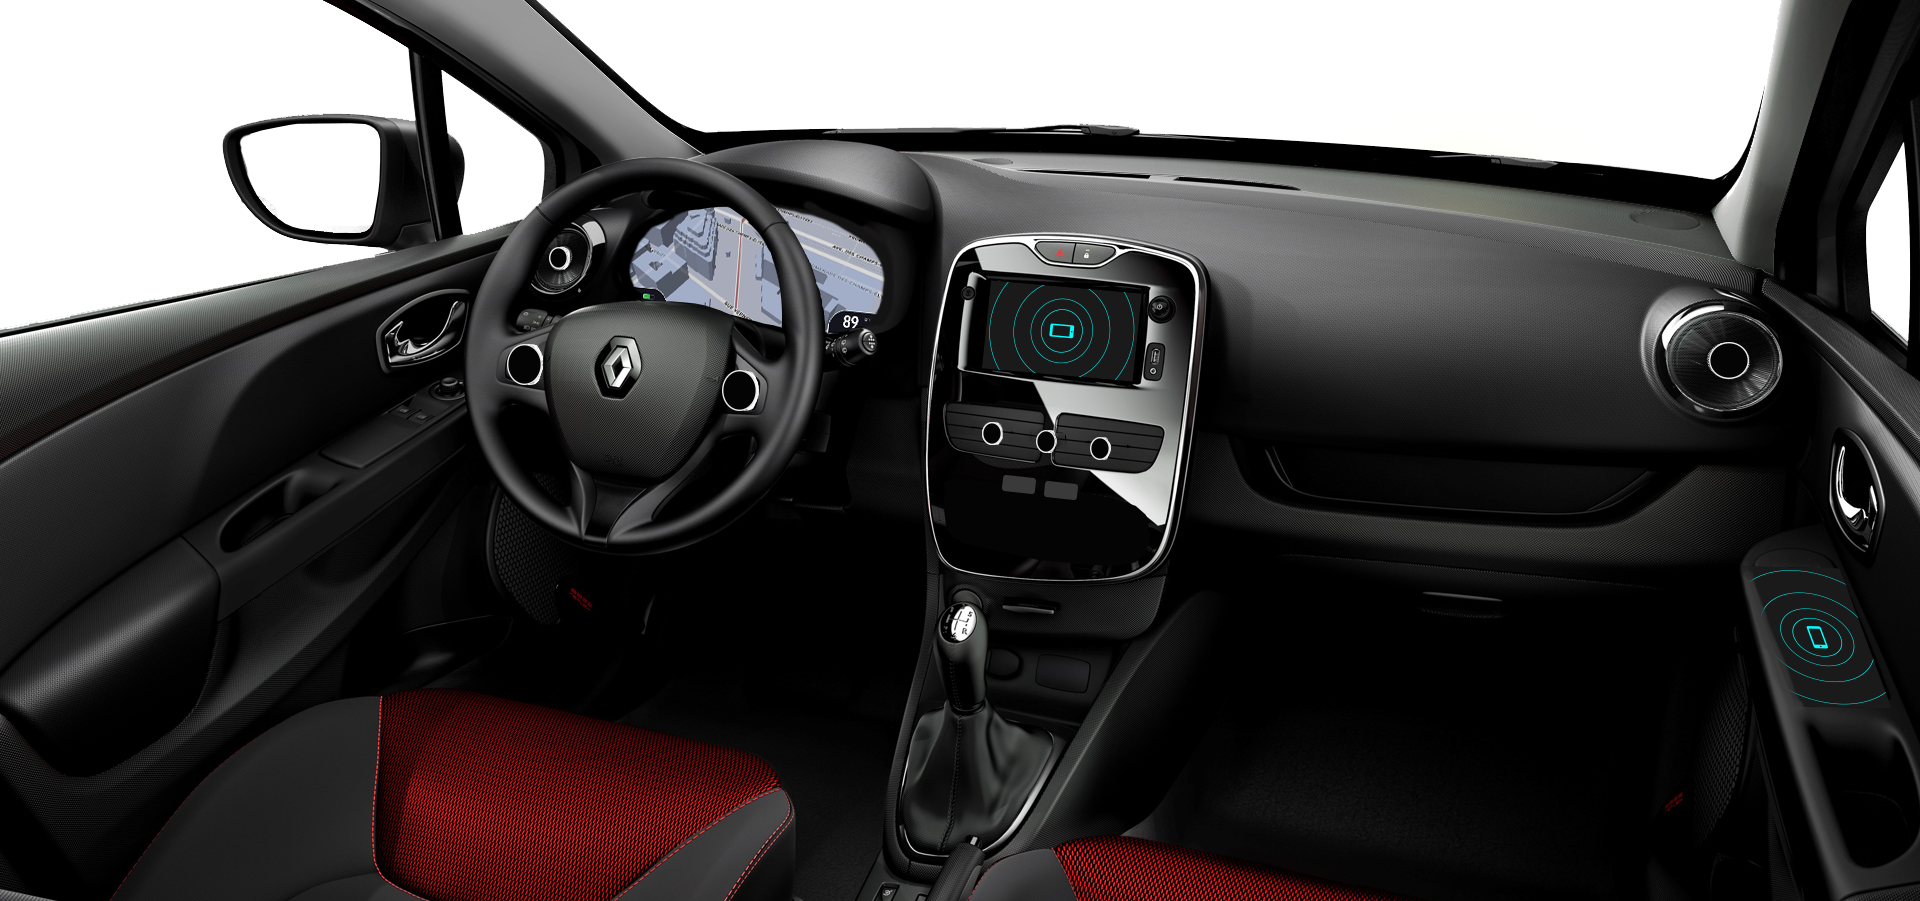 The interior has two access points where smartphones can be placed